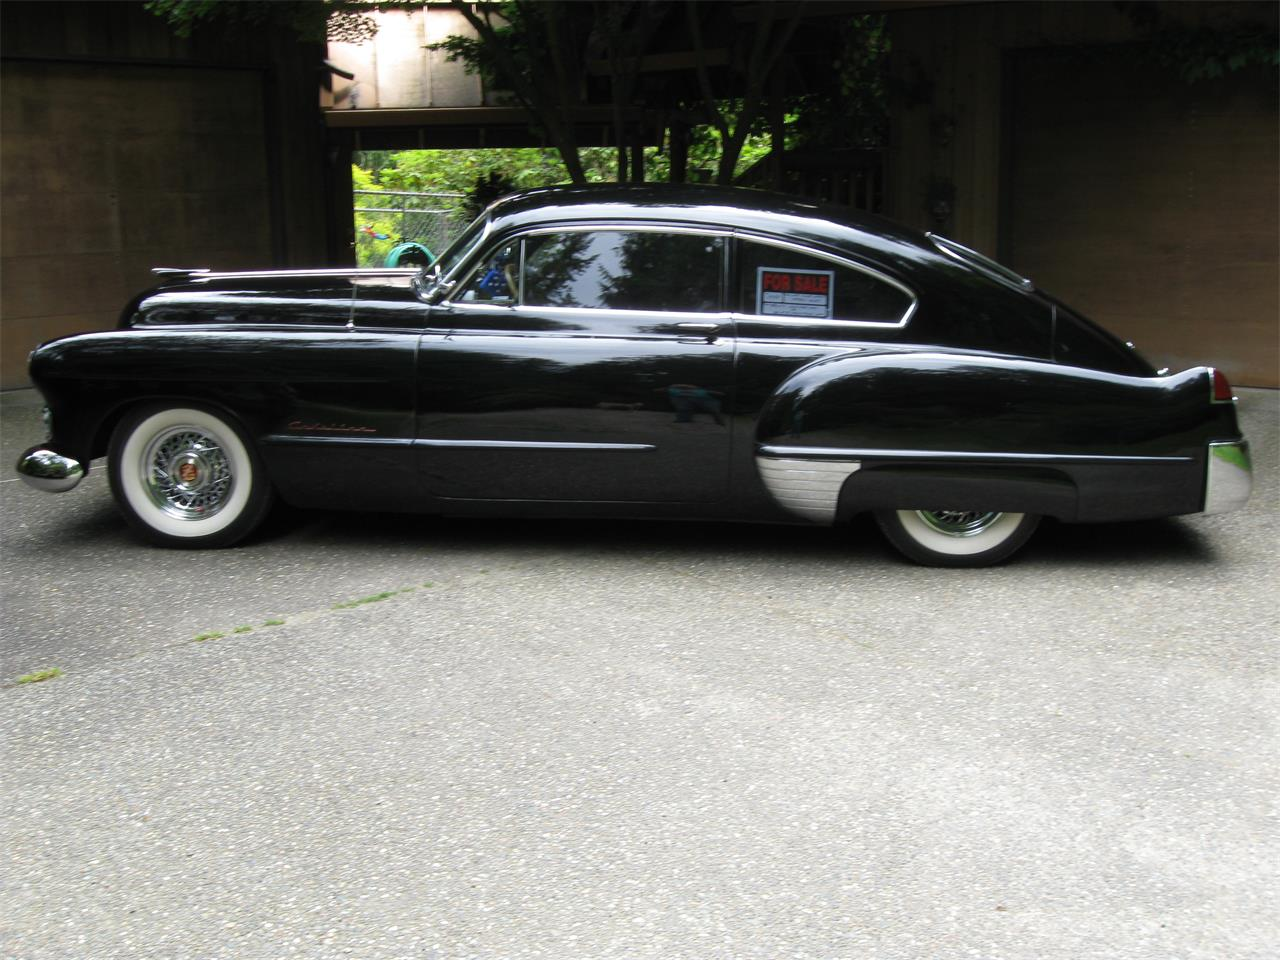 Large Picture of 1948 Series 61 located in California - $27,500.00 Offered by a Private Seller - P1AE